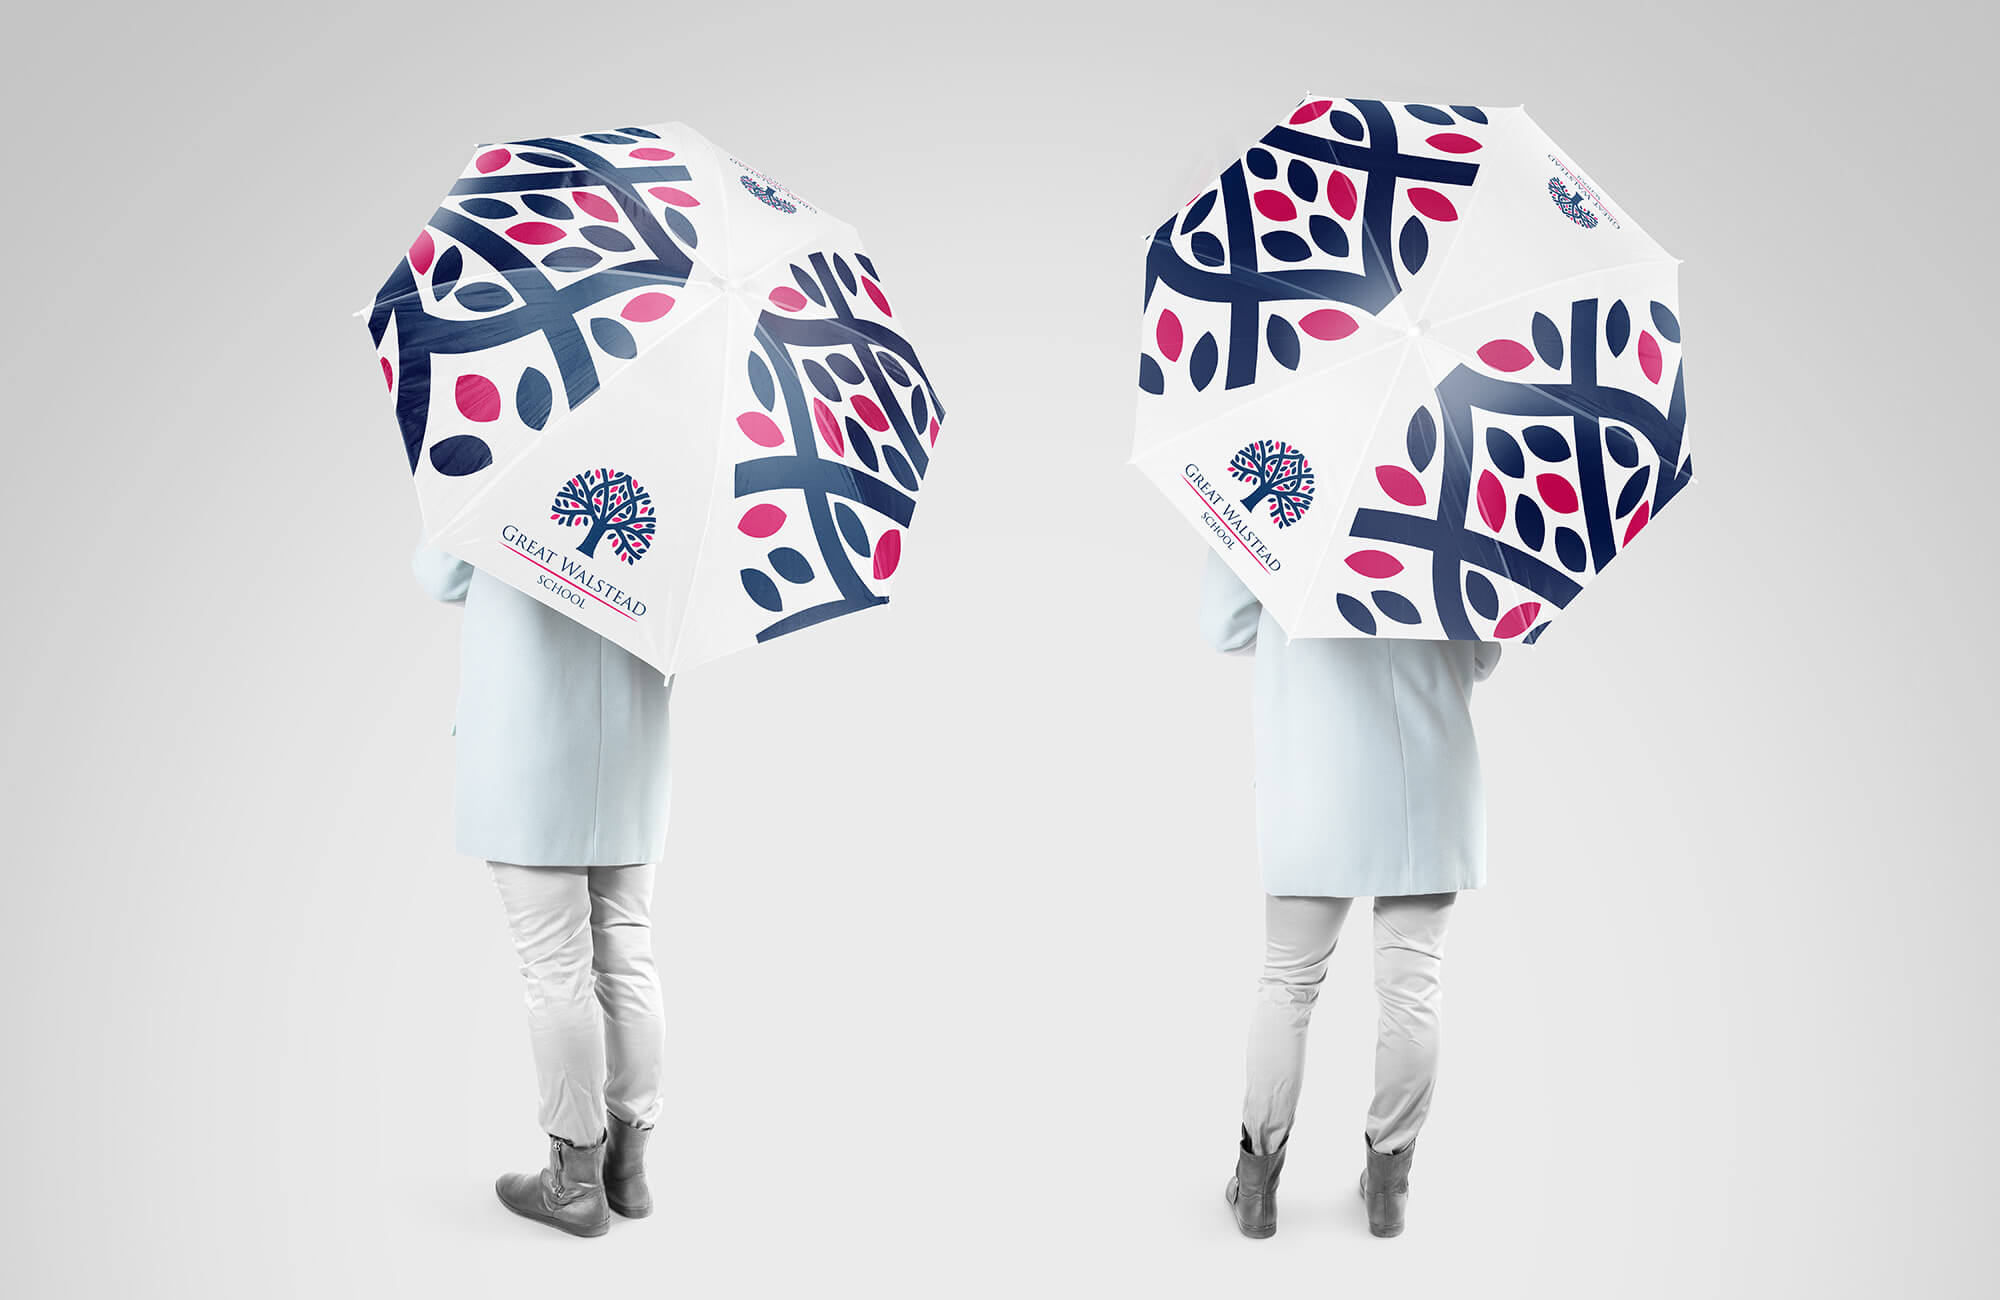 Great Walstead School Branded Umbrella Design Concept